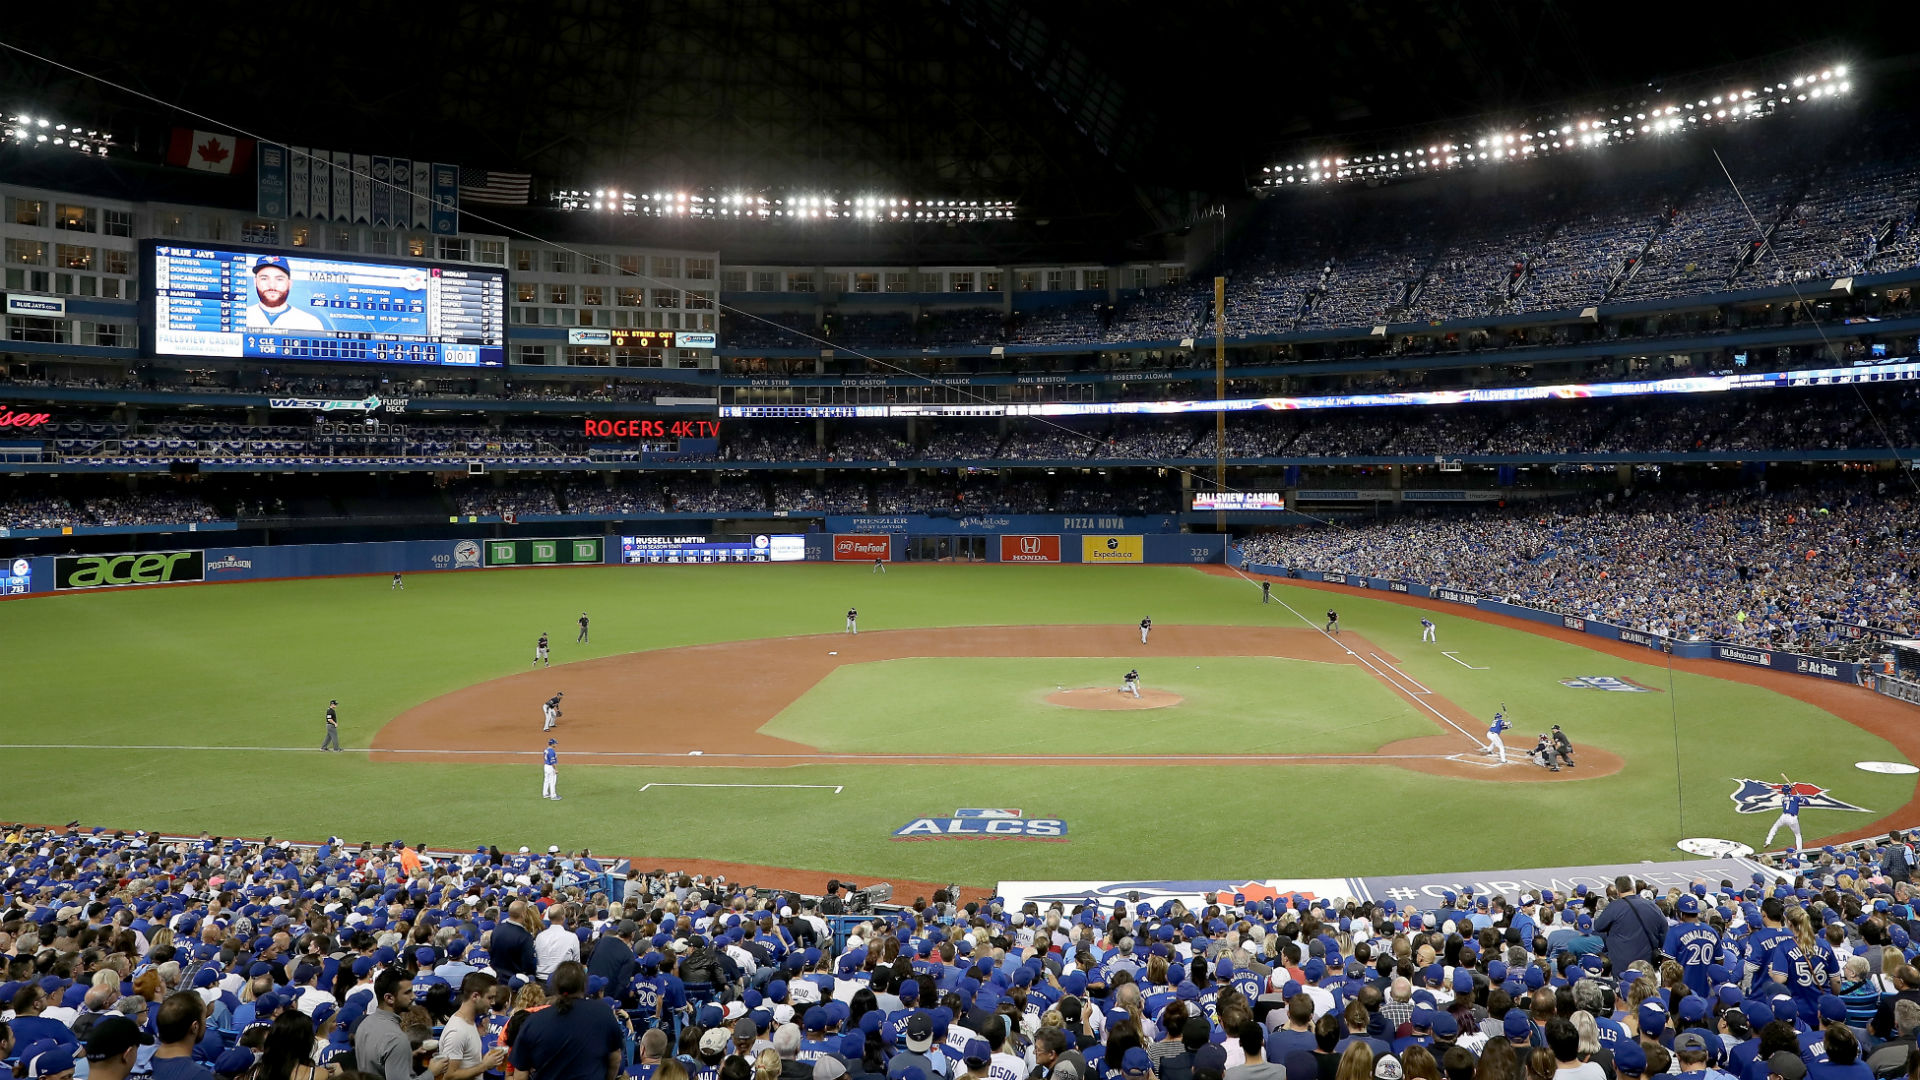 Are the Blue Jays up for sale?